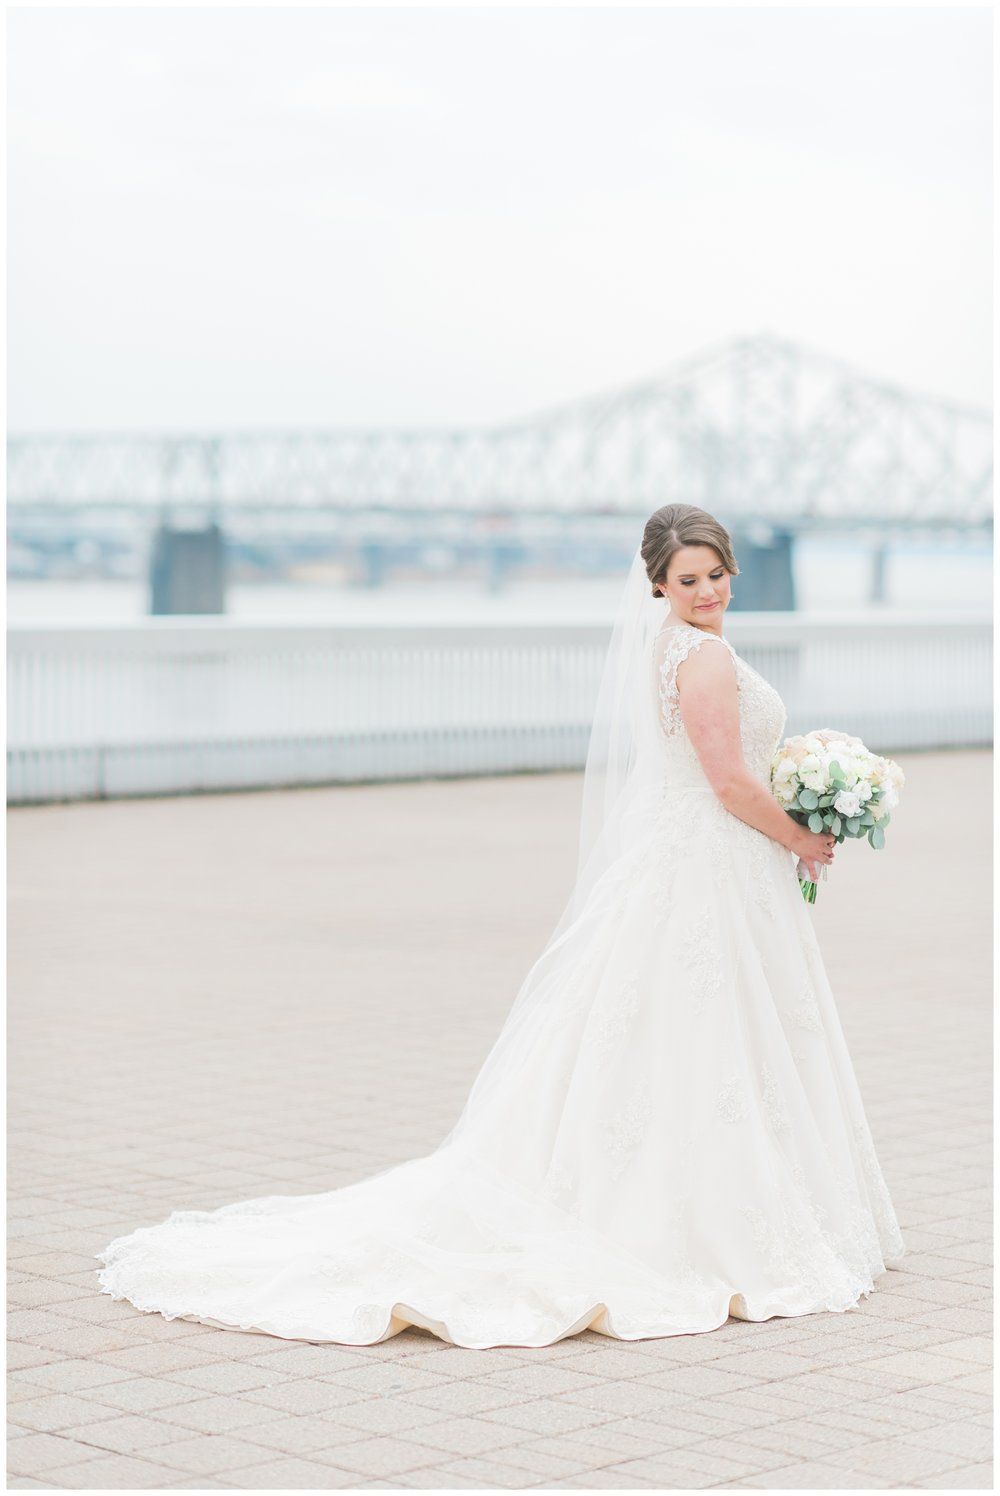 Rebecca_Bridges_Photography_Indianapolis_Wedding_Photographer_5912.jpg